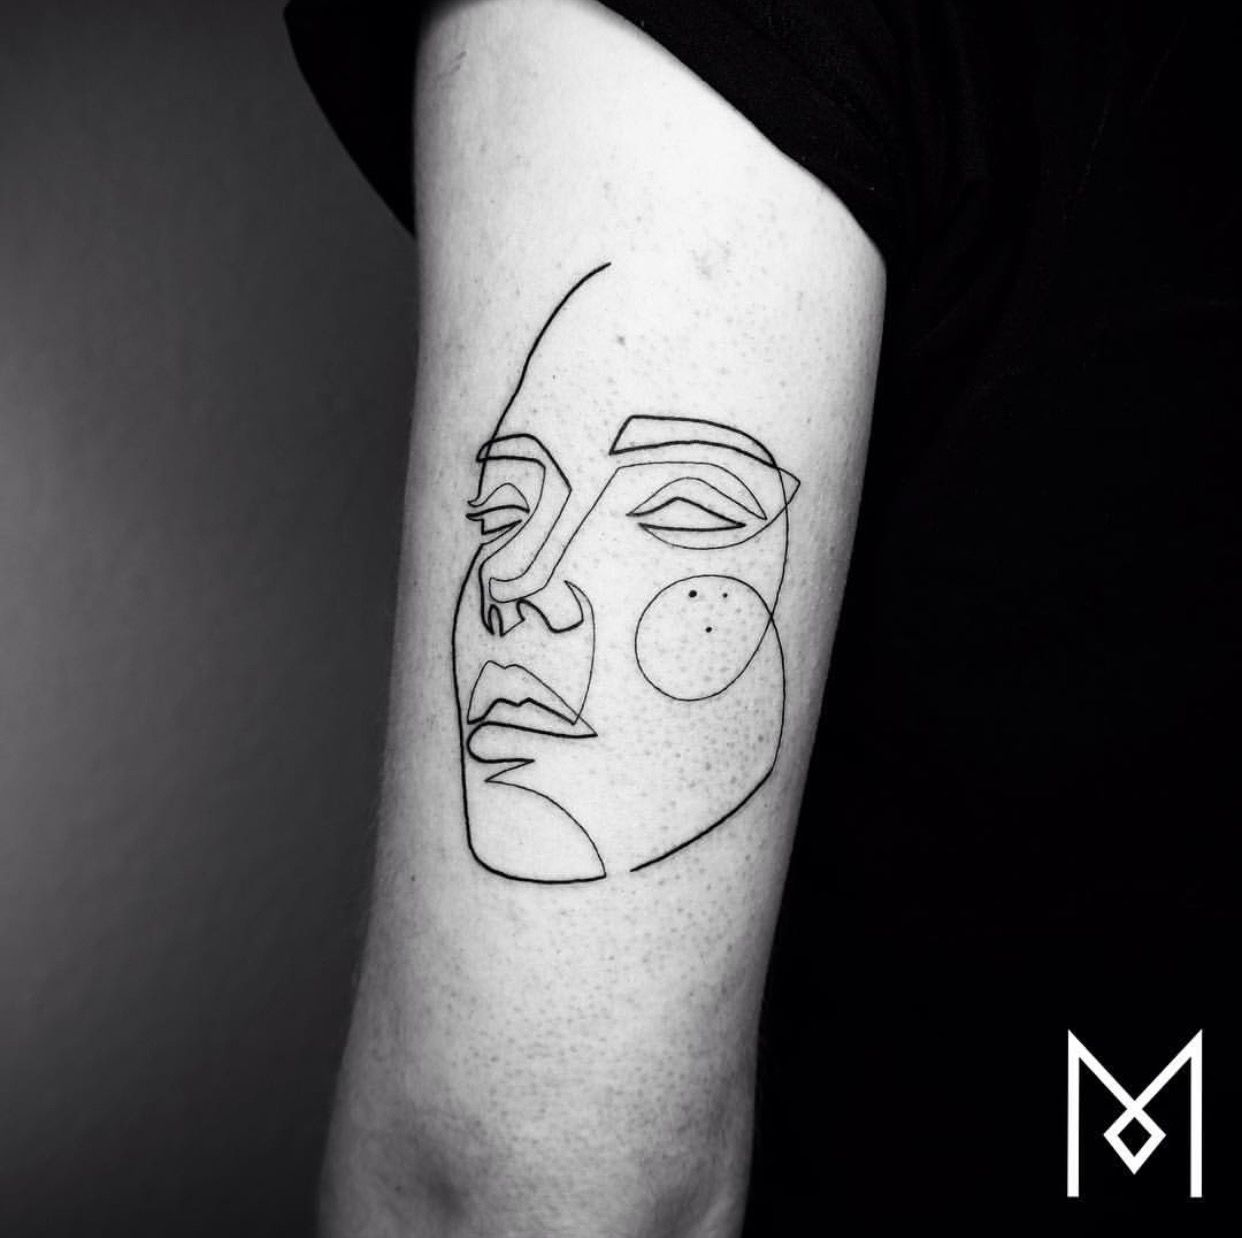 Line Tattoo One Line Face Portrait Tattoos Line Art